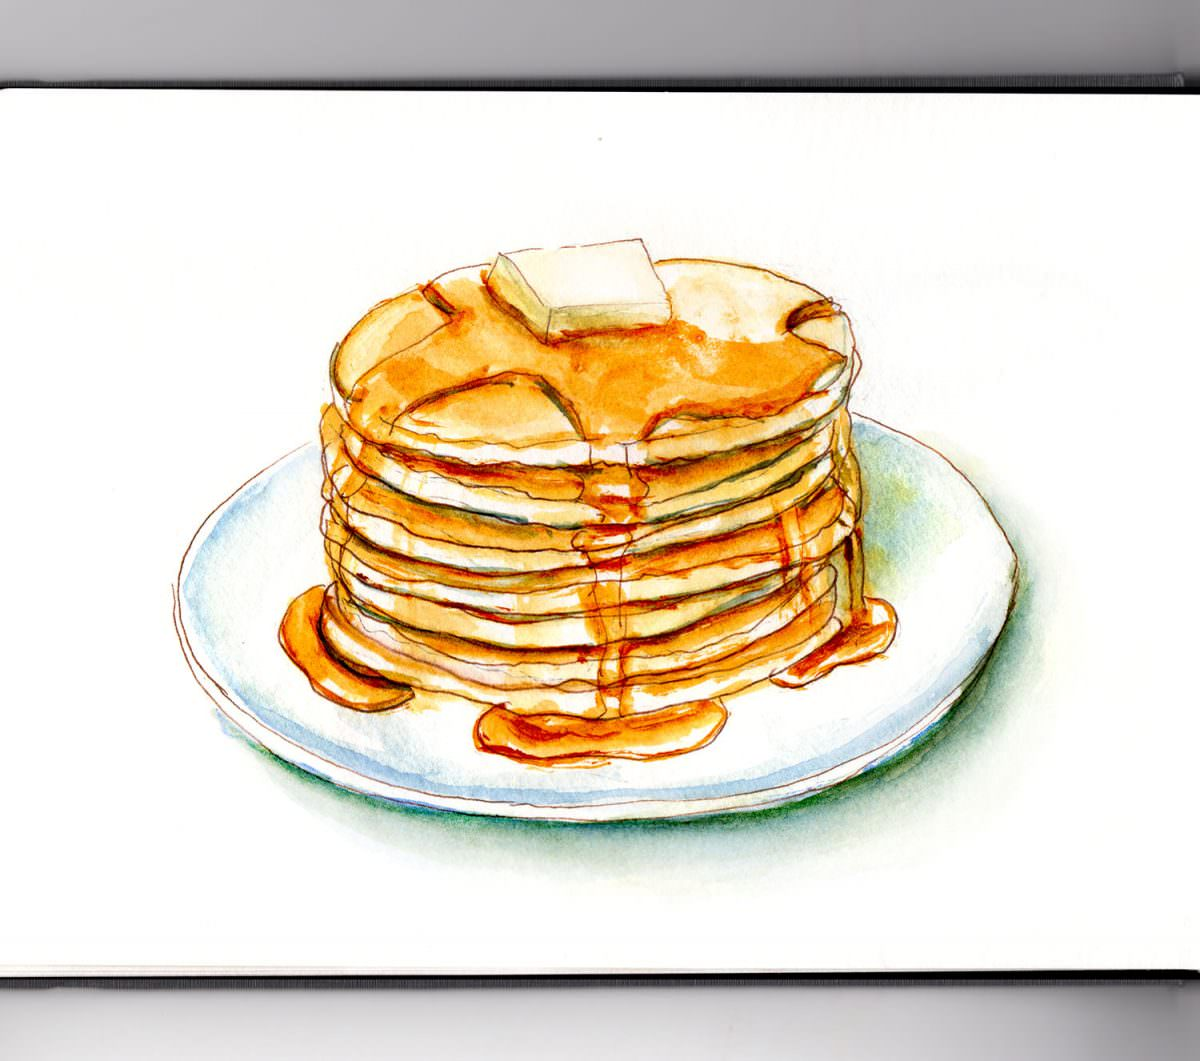 #WorldWatercolorGroup - Day 7 - Maple Syrup and Pancakes - Doodlewash